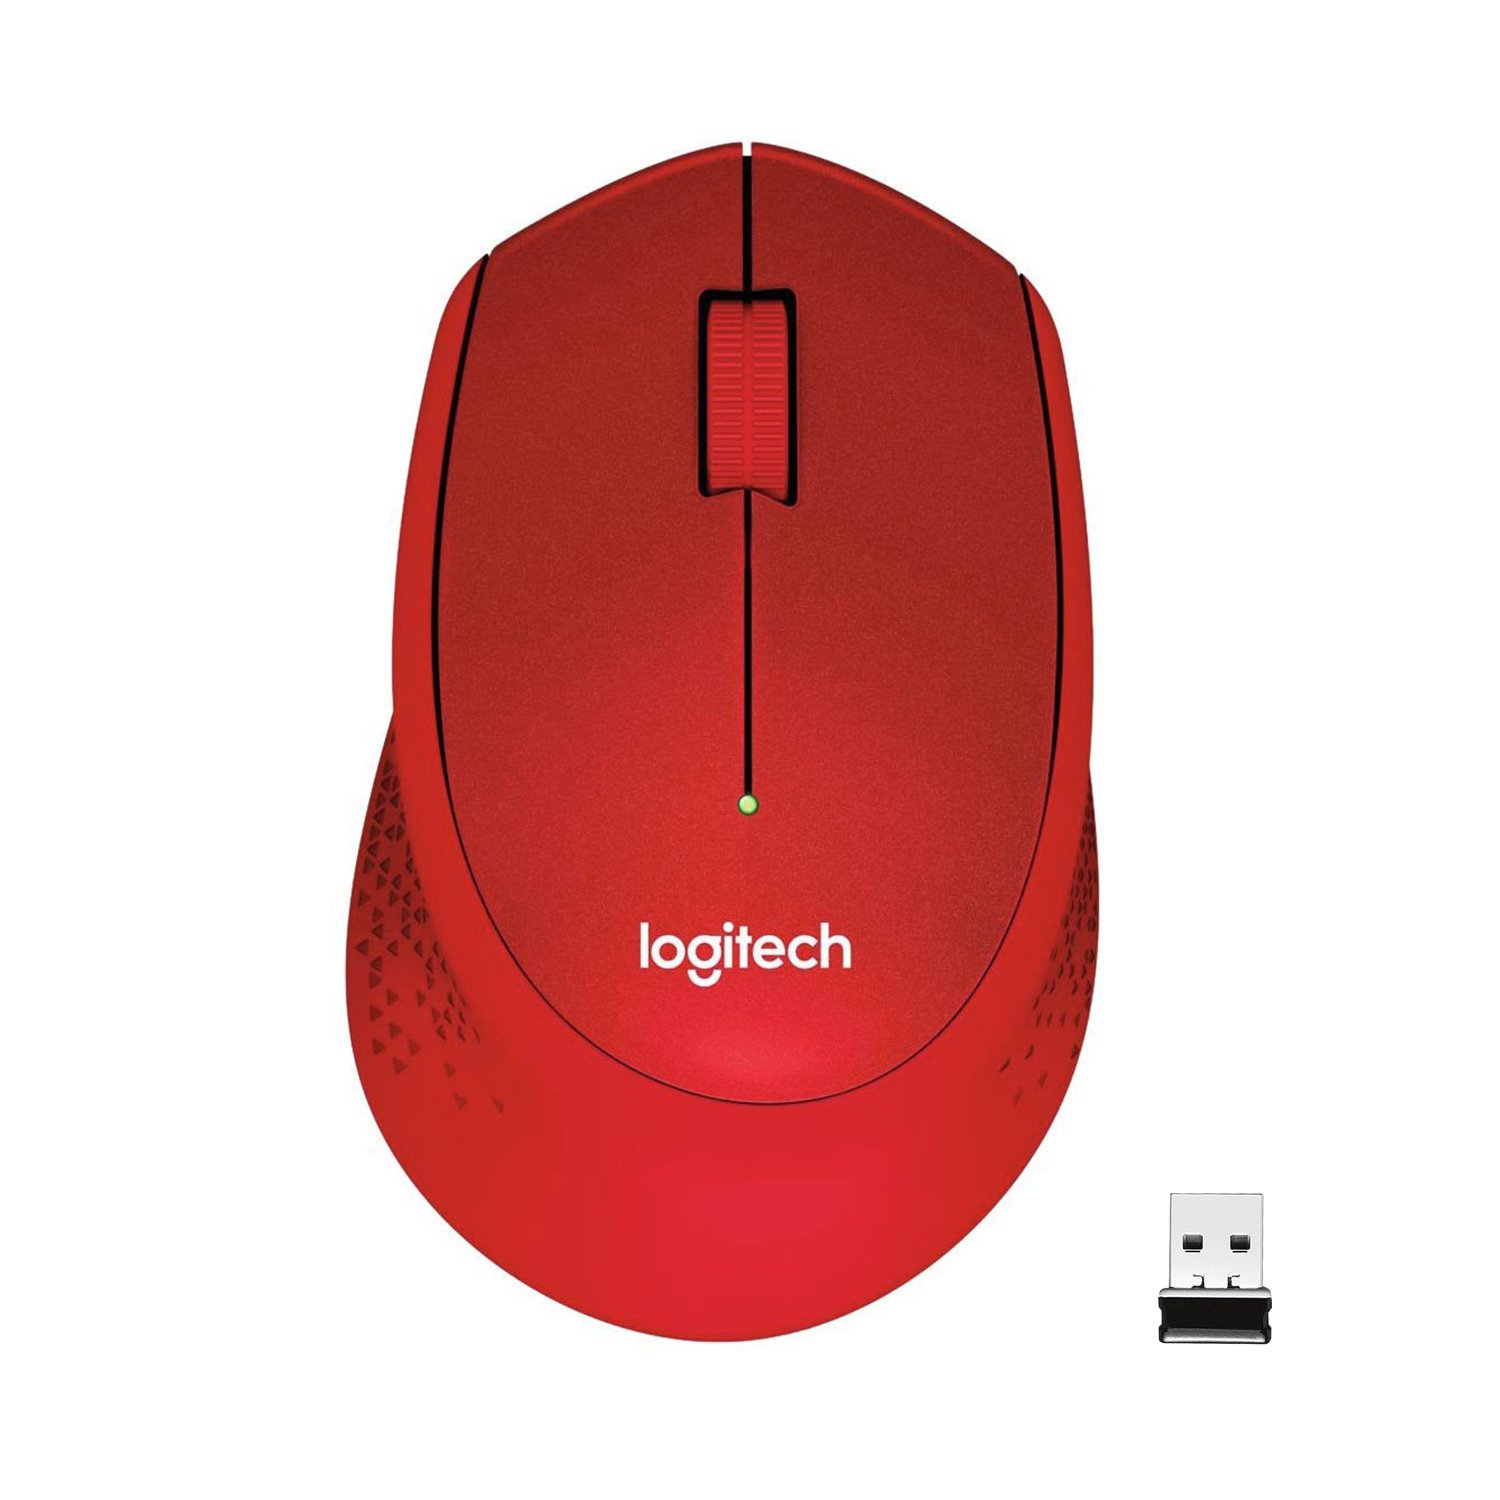 Logitech M330 Wireless Silent Mouse review